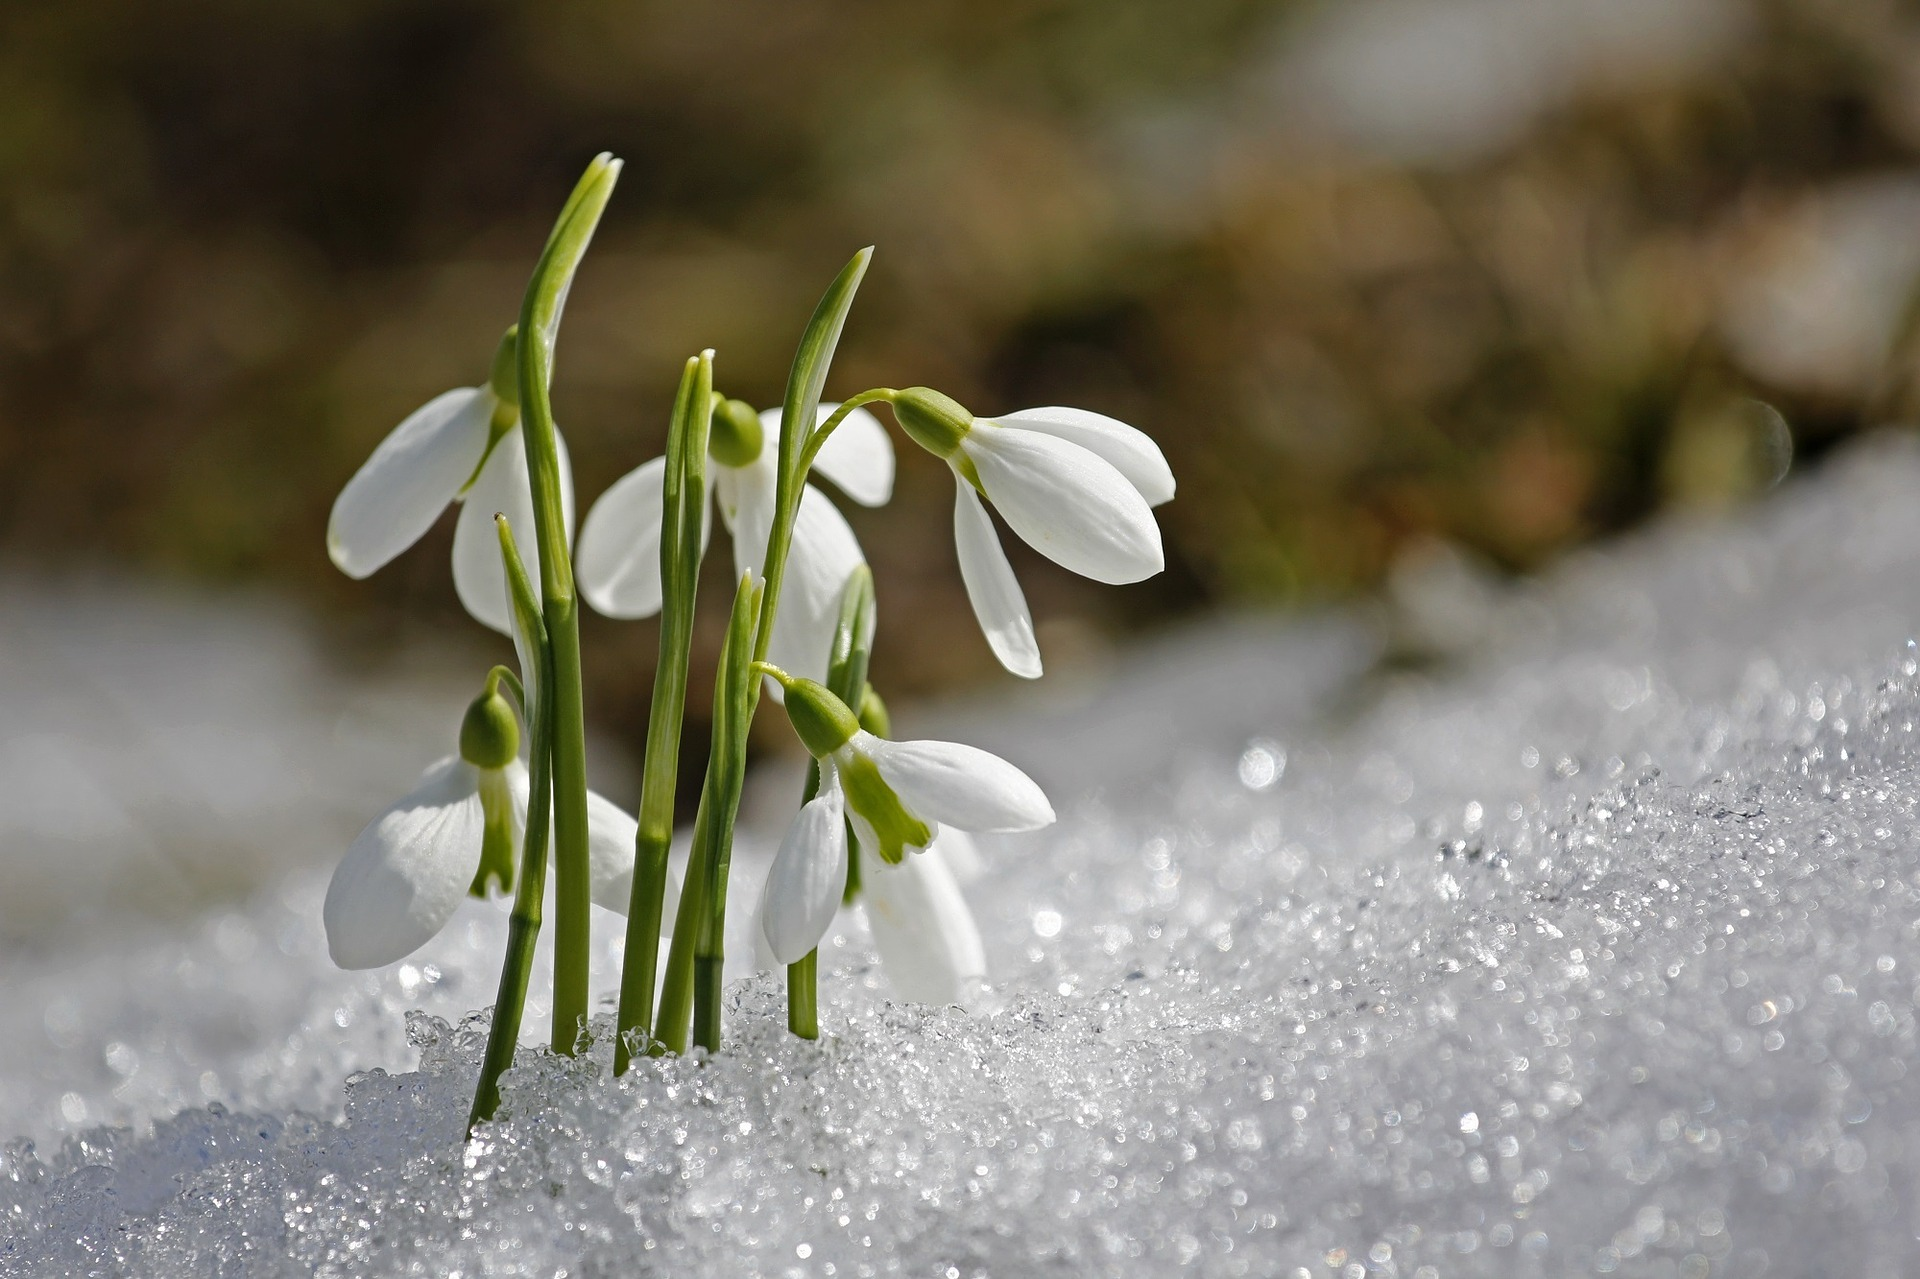 Snowdrops are one of the first flowers of the year to bloom